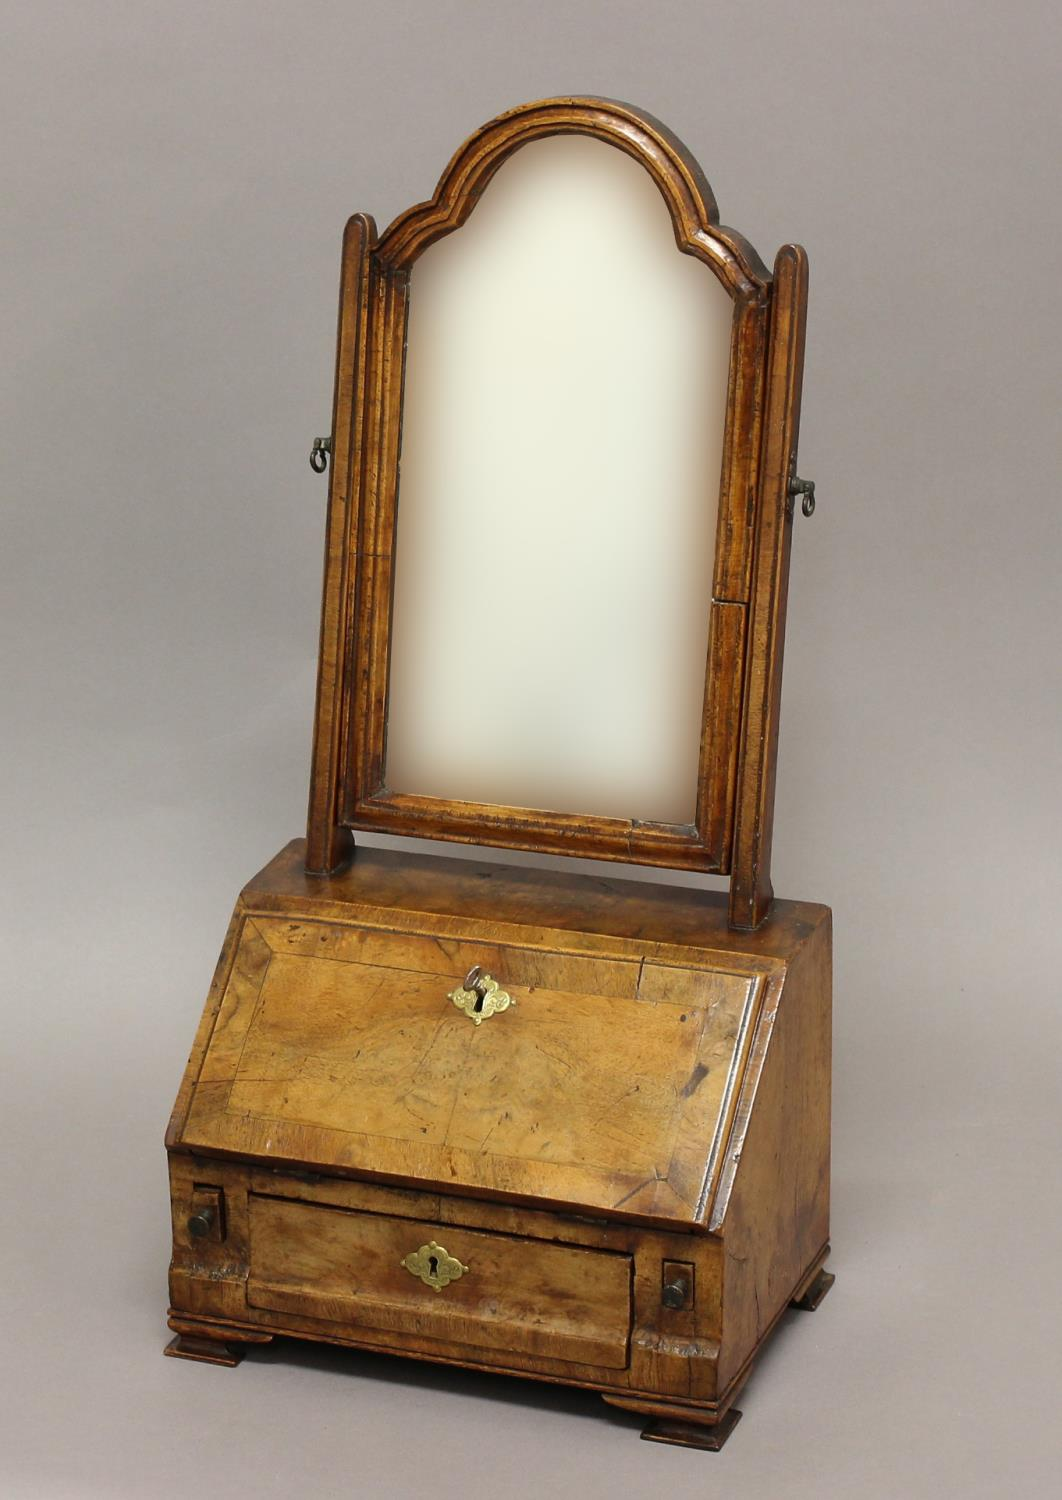 A QUEEN ANNE WALNUT TOILET MIRROR, the shaped mirror above a fitted bureau base with three